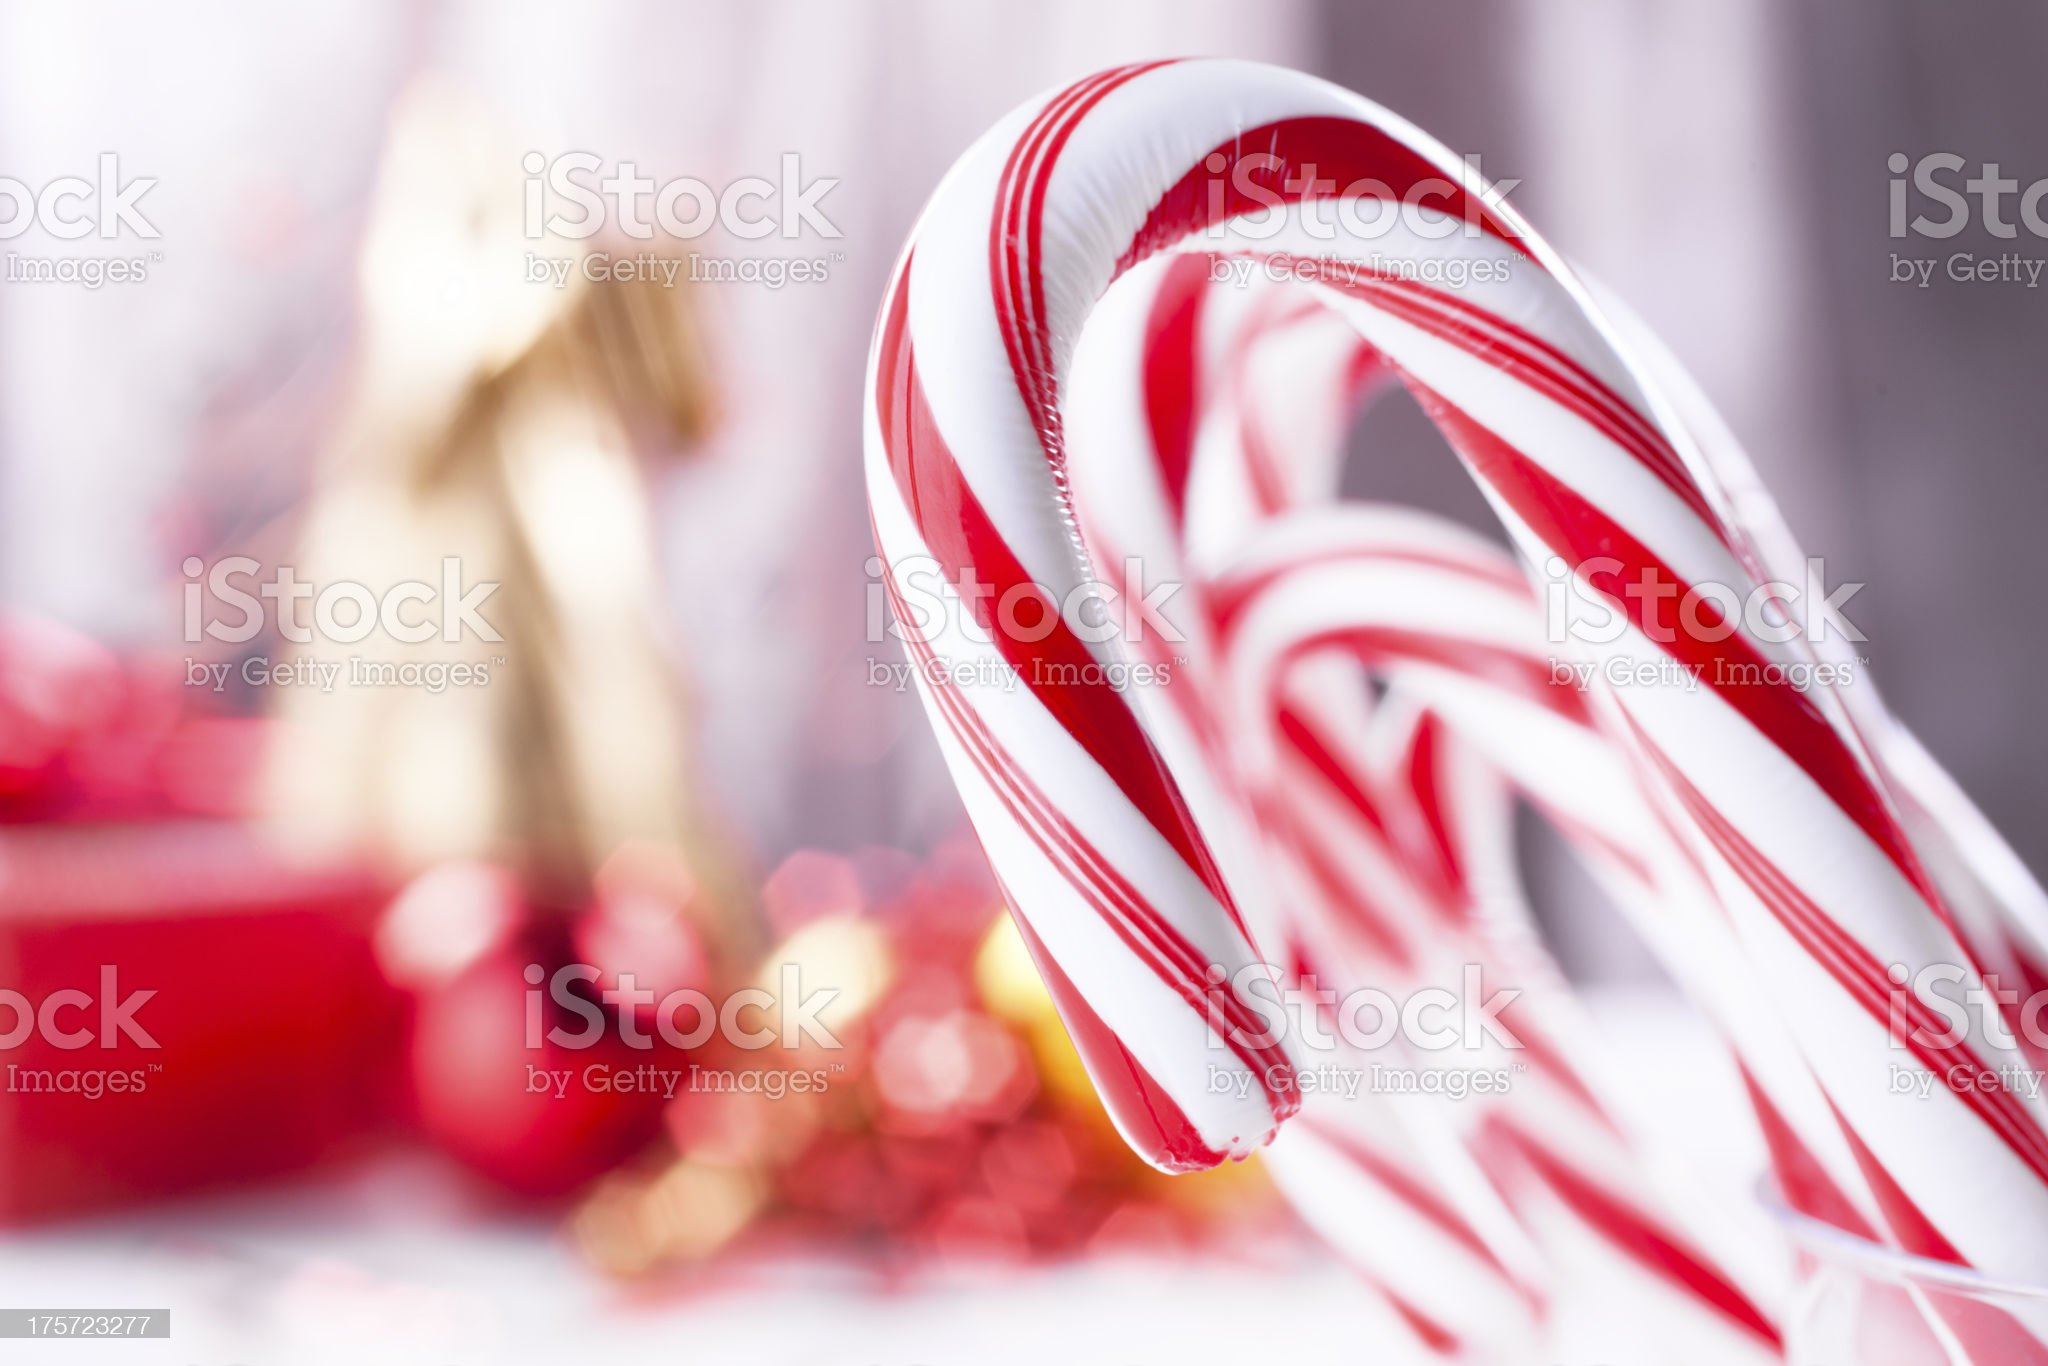 Christmas: Candy canes in a row. Shallow depth of field. royalty-free stock photo